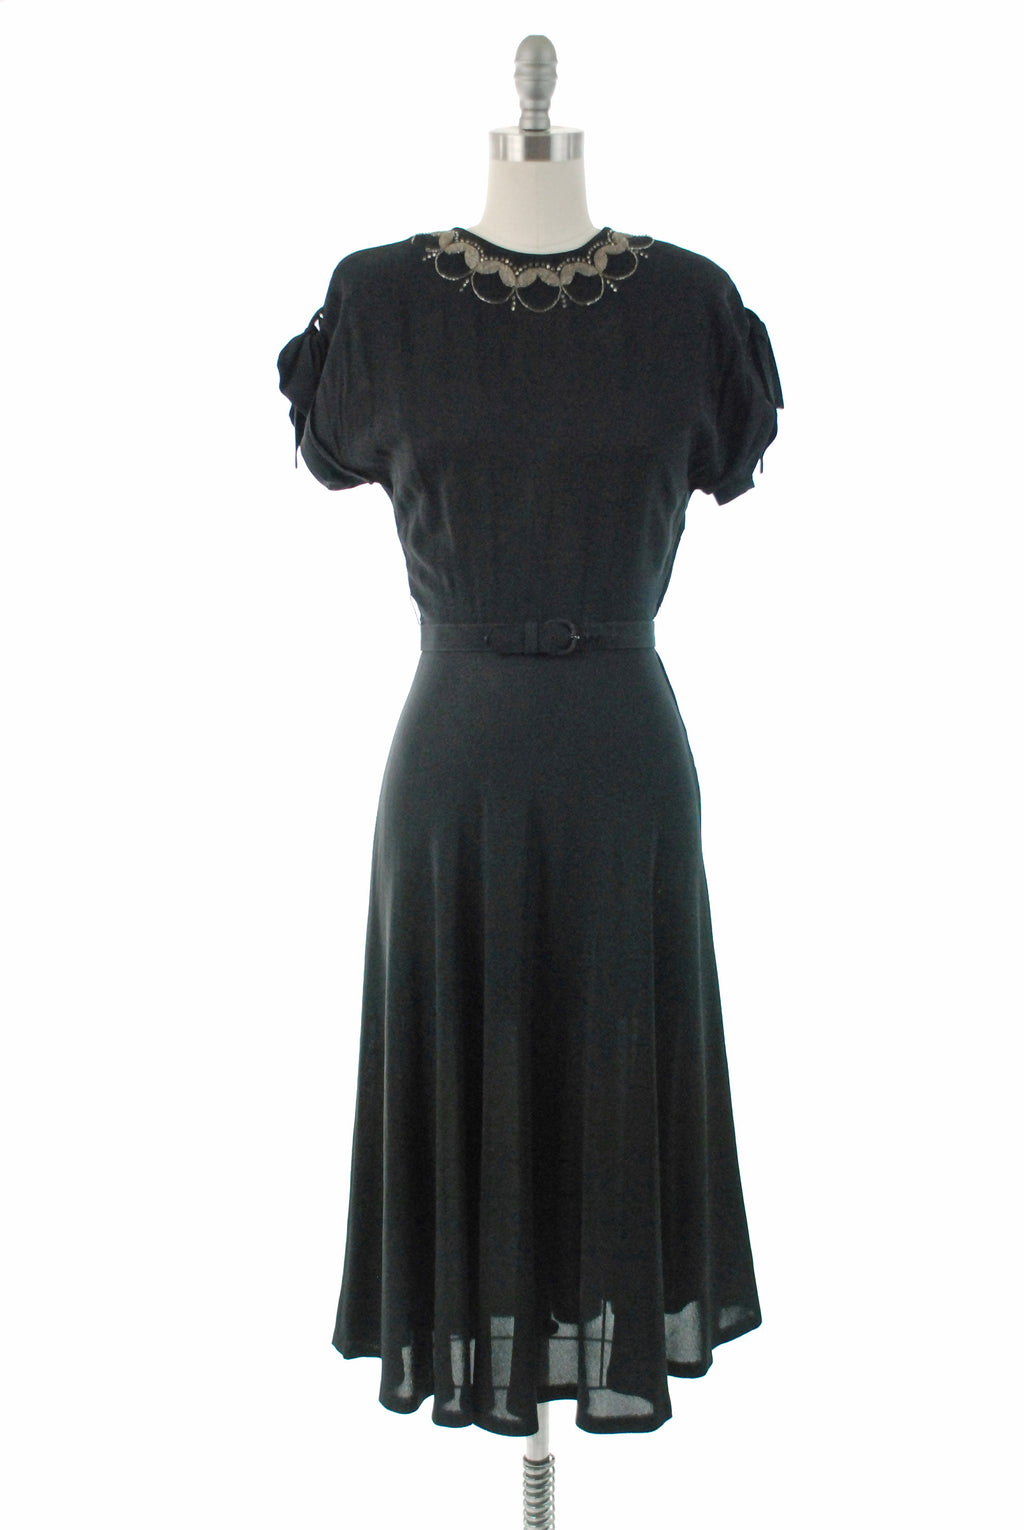 Vintage 1940s Dress - Sophisticated Black Rayon Crepe 40s Cocktail Dress with Simple Beaded Neckline